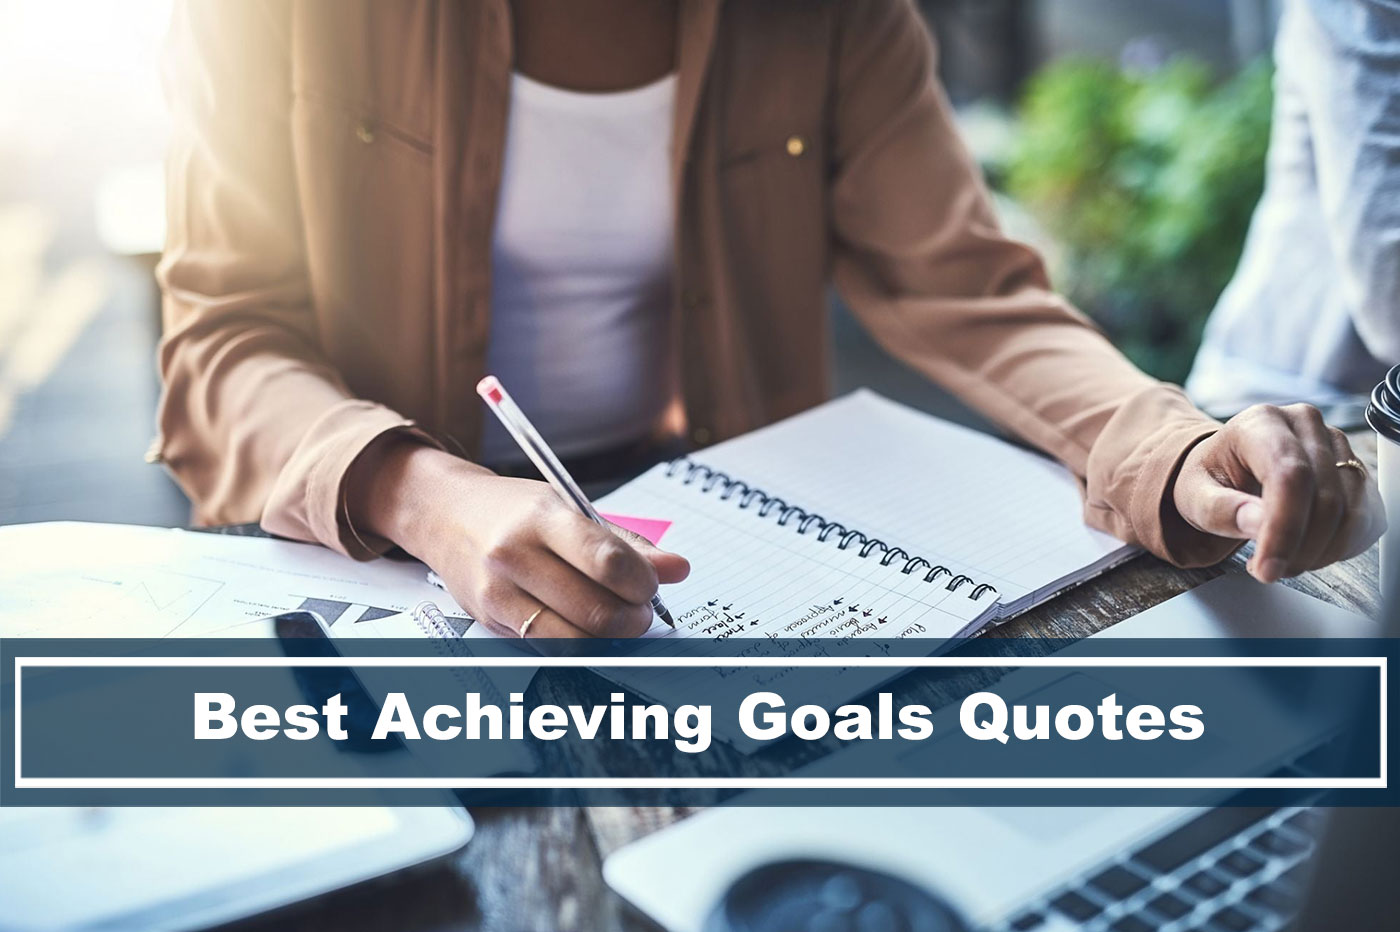 Quotes to help you achieve your goals and dreams